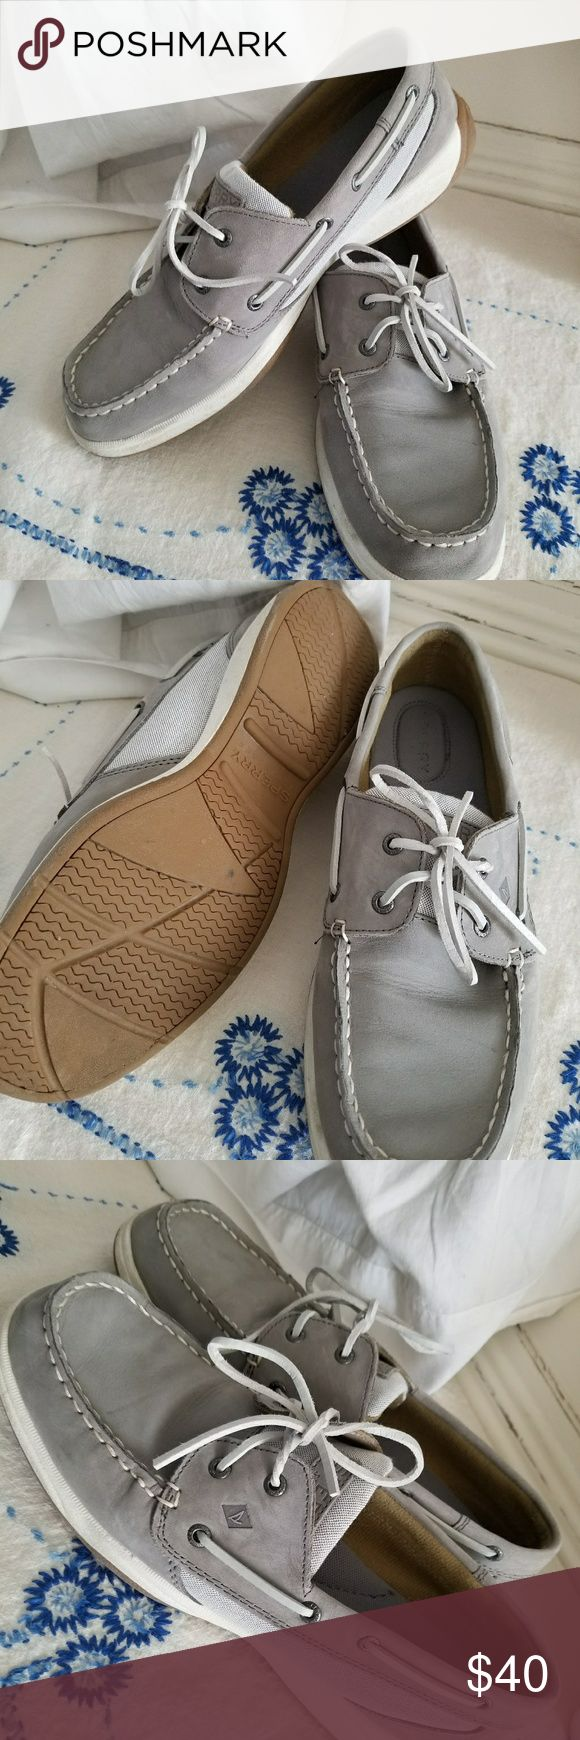 I just added this listing on Poshmark: Sperry Top Sider leather & canvas boat shoe sz 10. #shopmycloset #poshmark #fashion #shopping #style #forsale #Sperry #Shoes